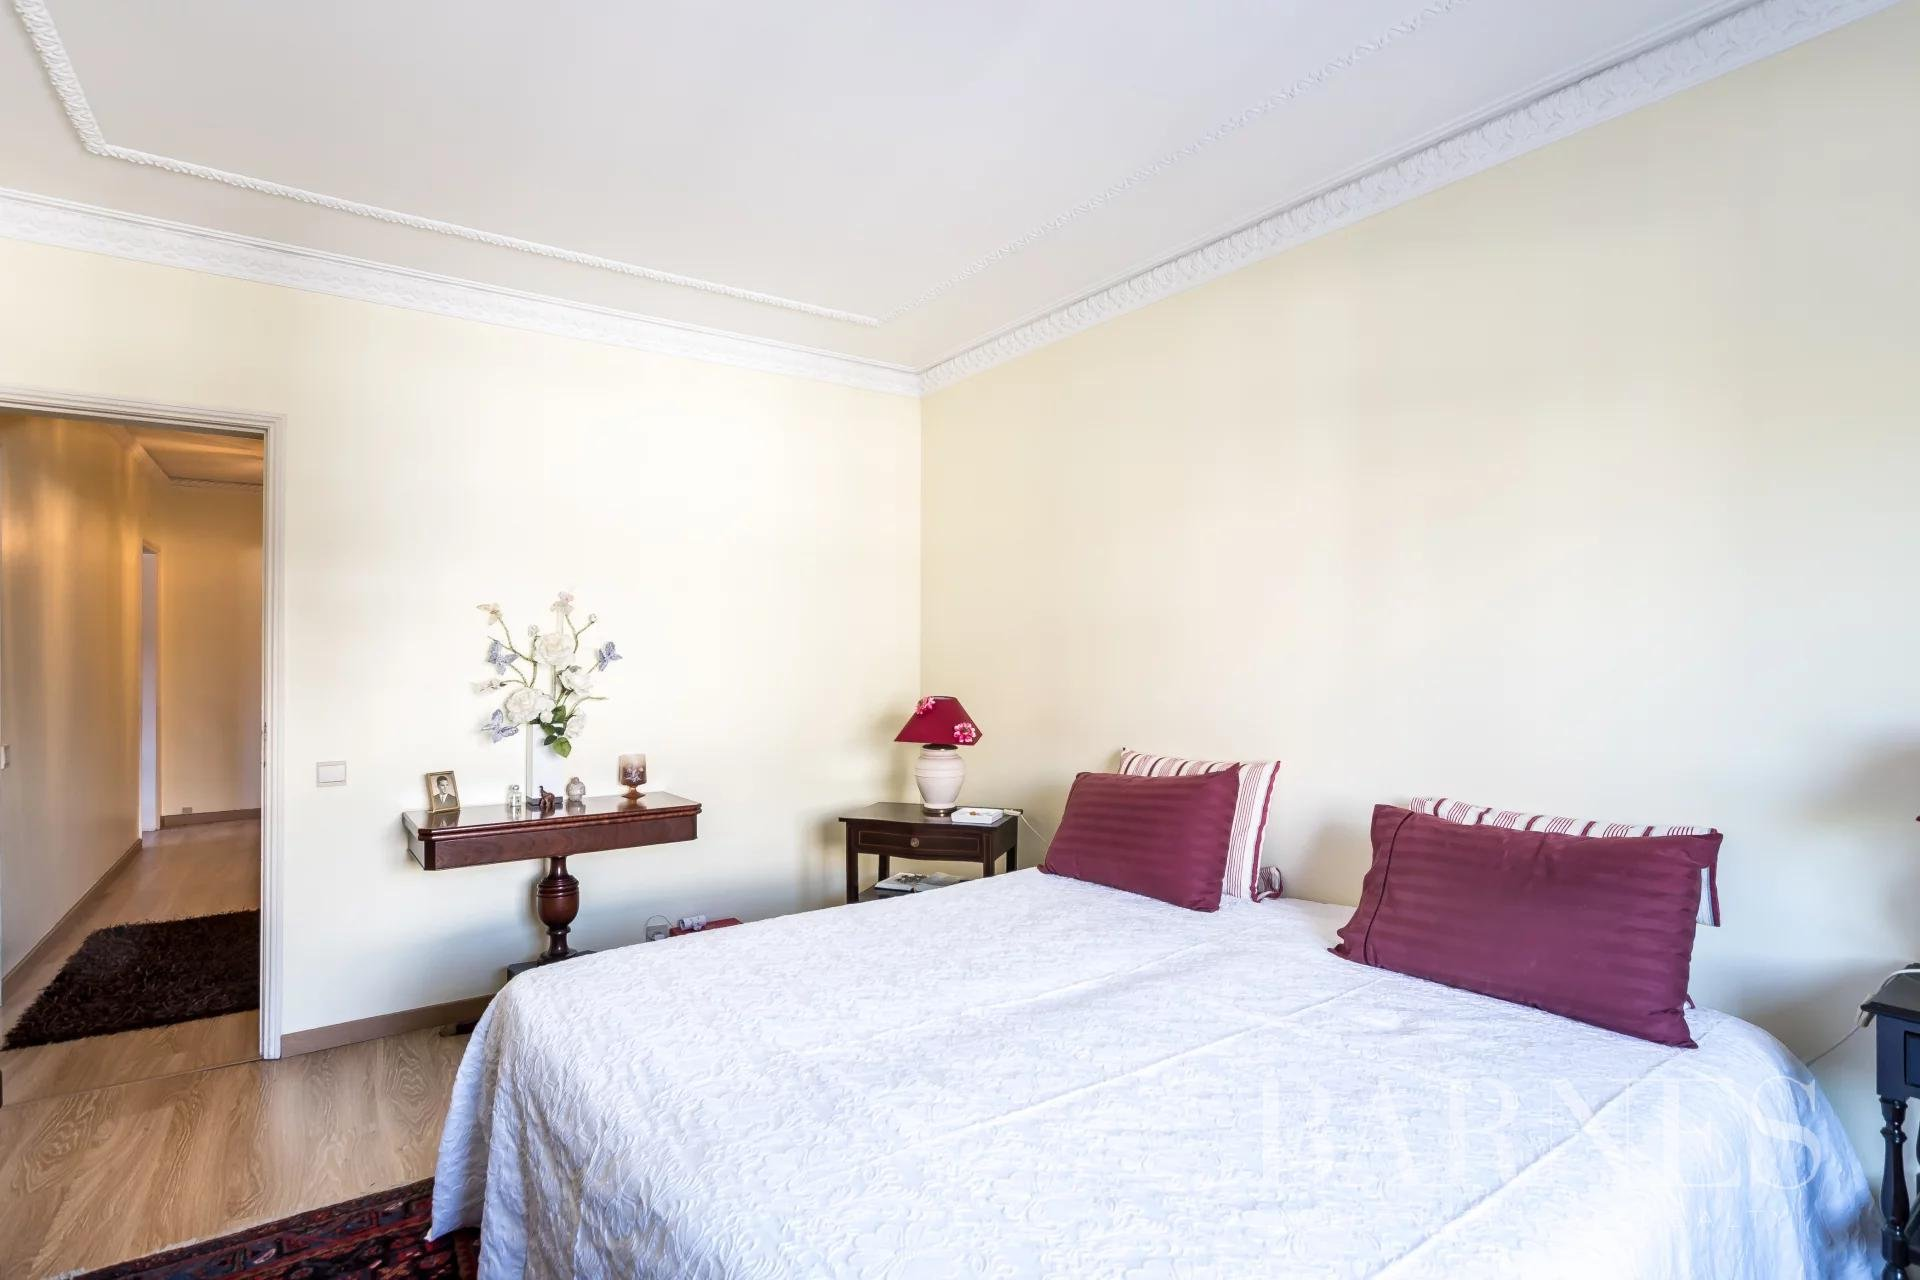 3 Bedroom apartment in the center of Cascais